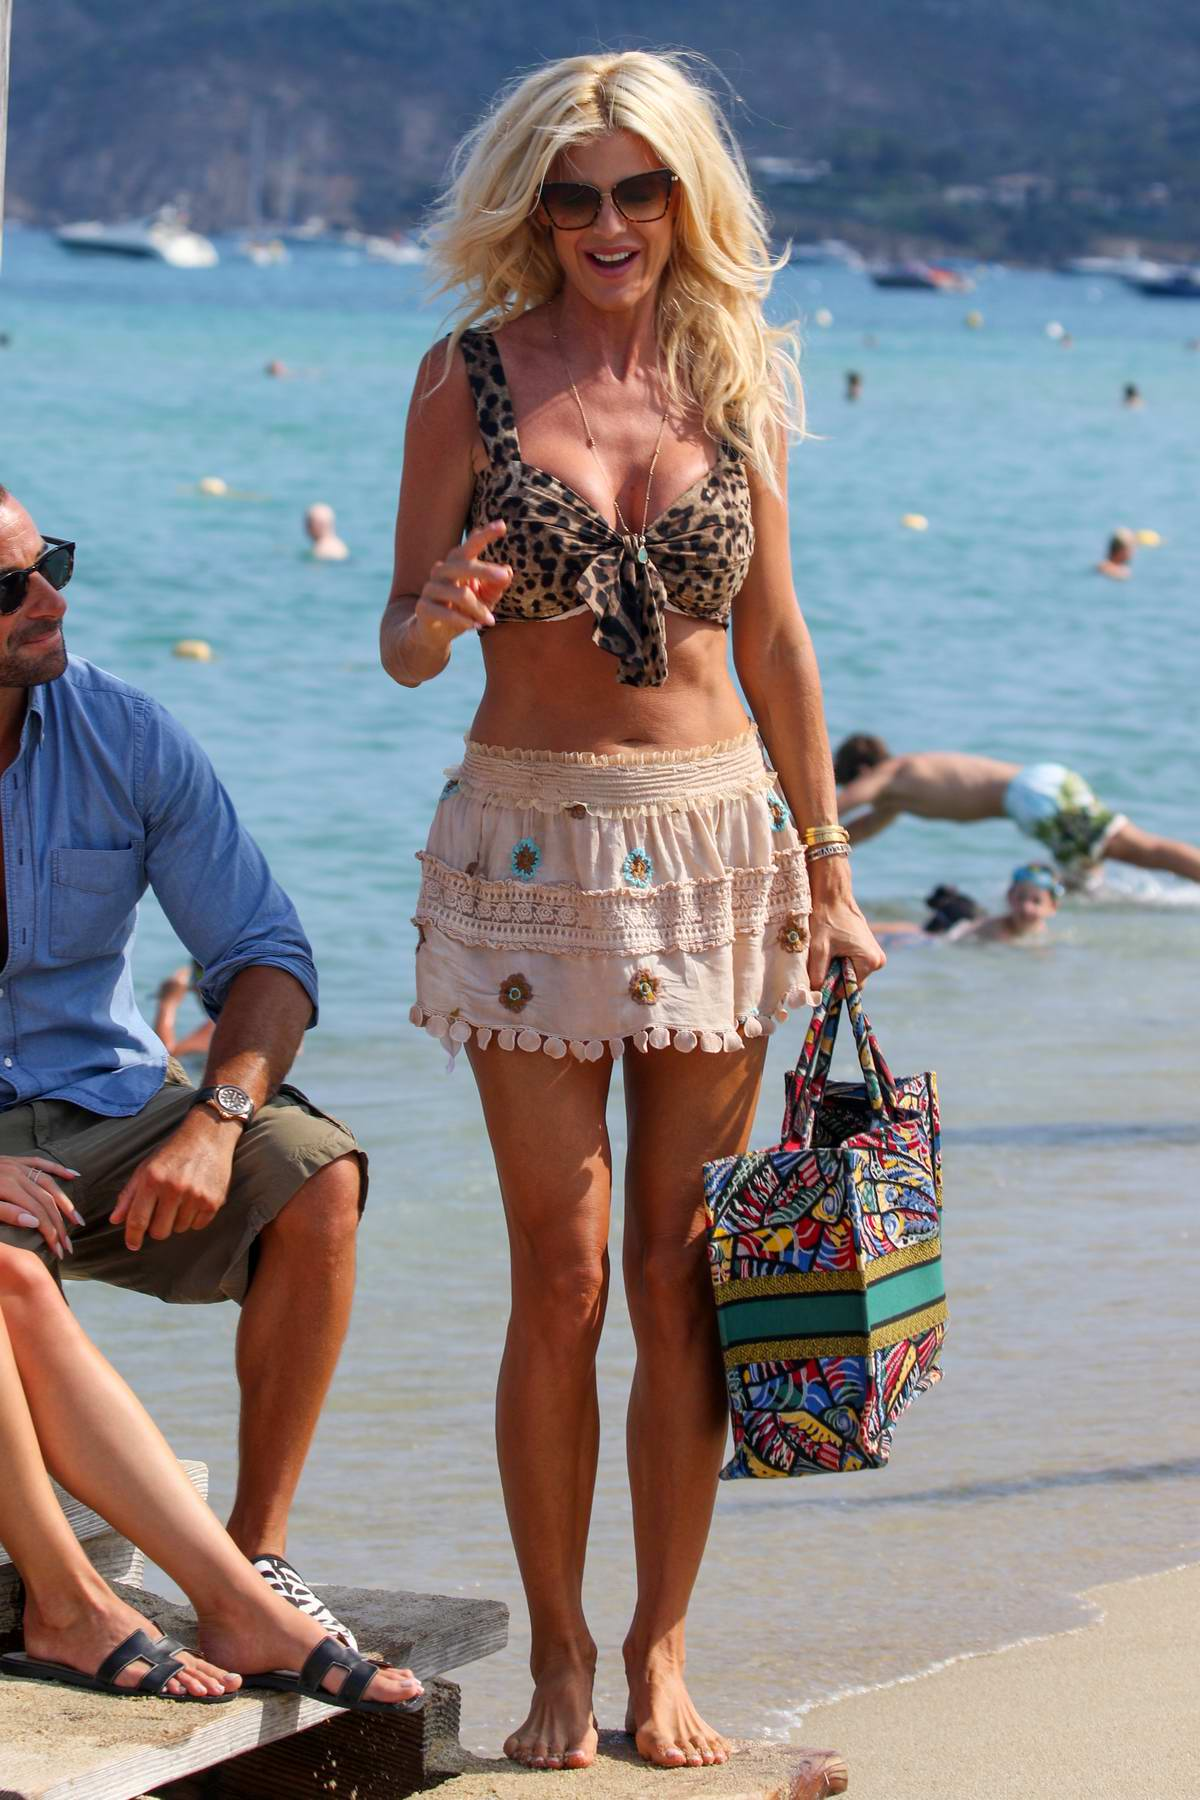 Victoria Silvstedt shows off her amazing figure while out for lunch at the club 55 in Saint-Tropez, France